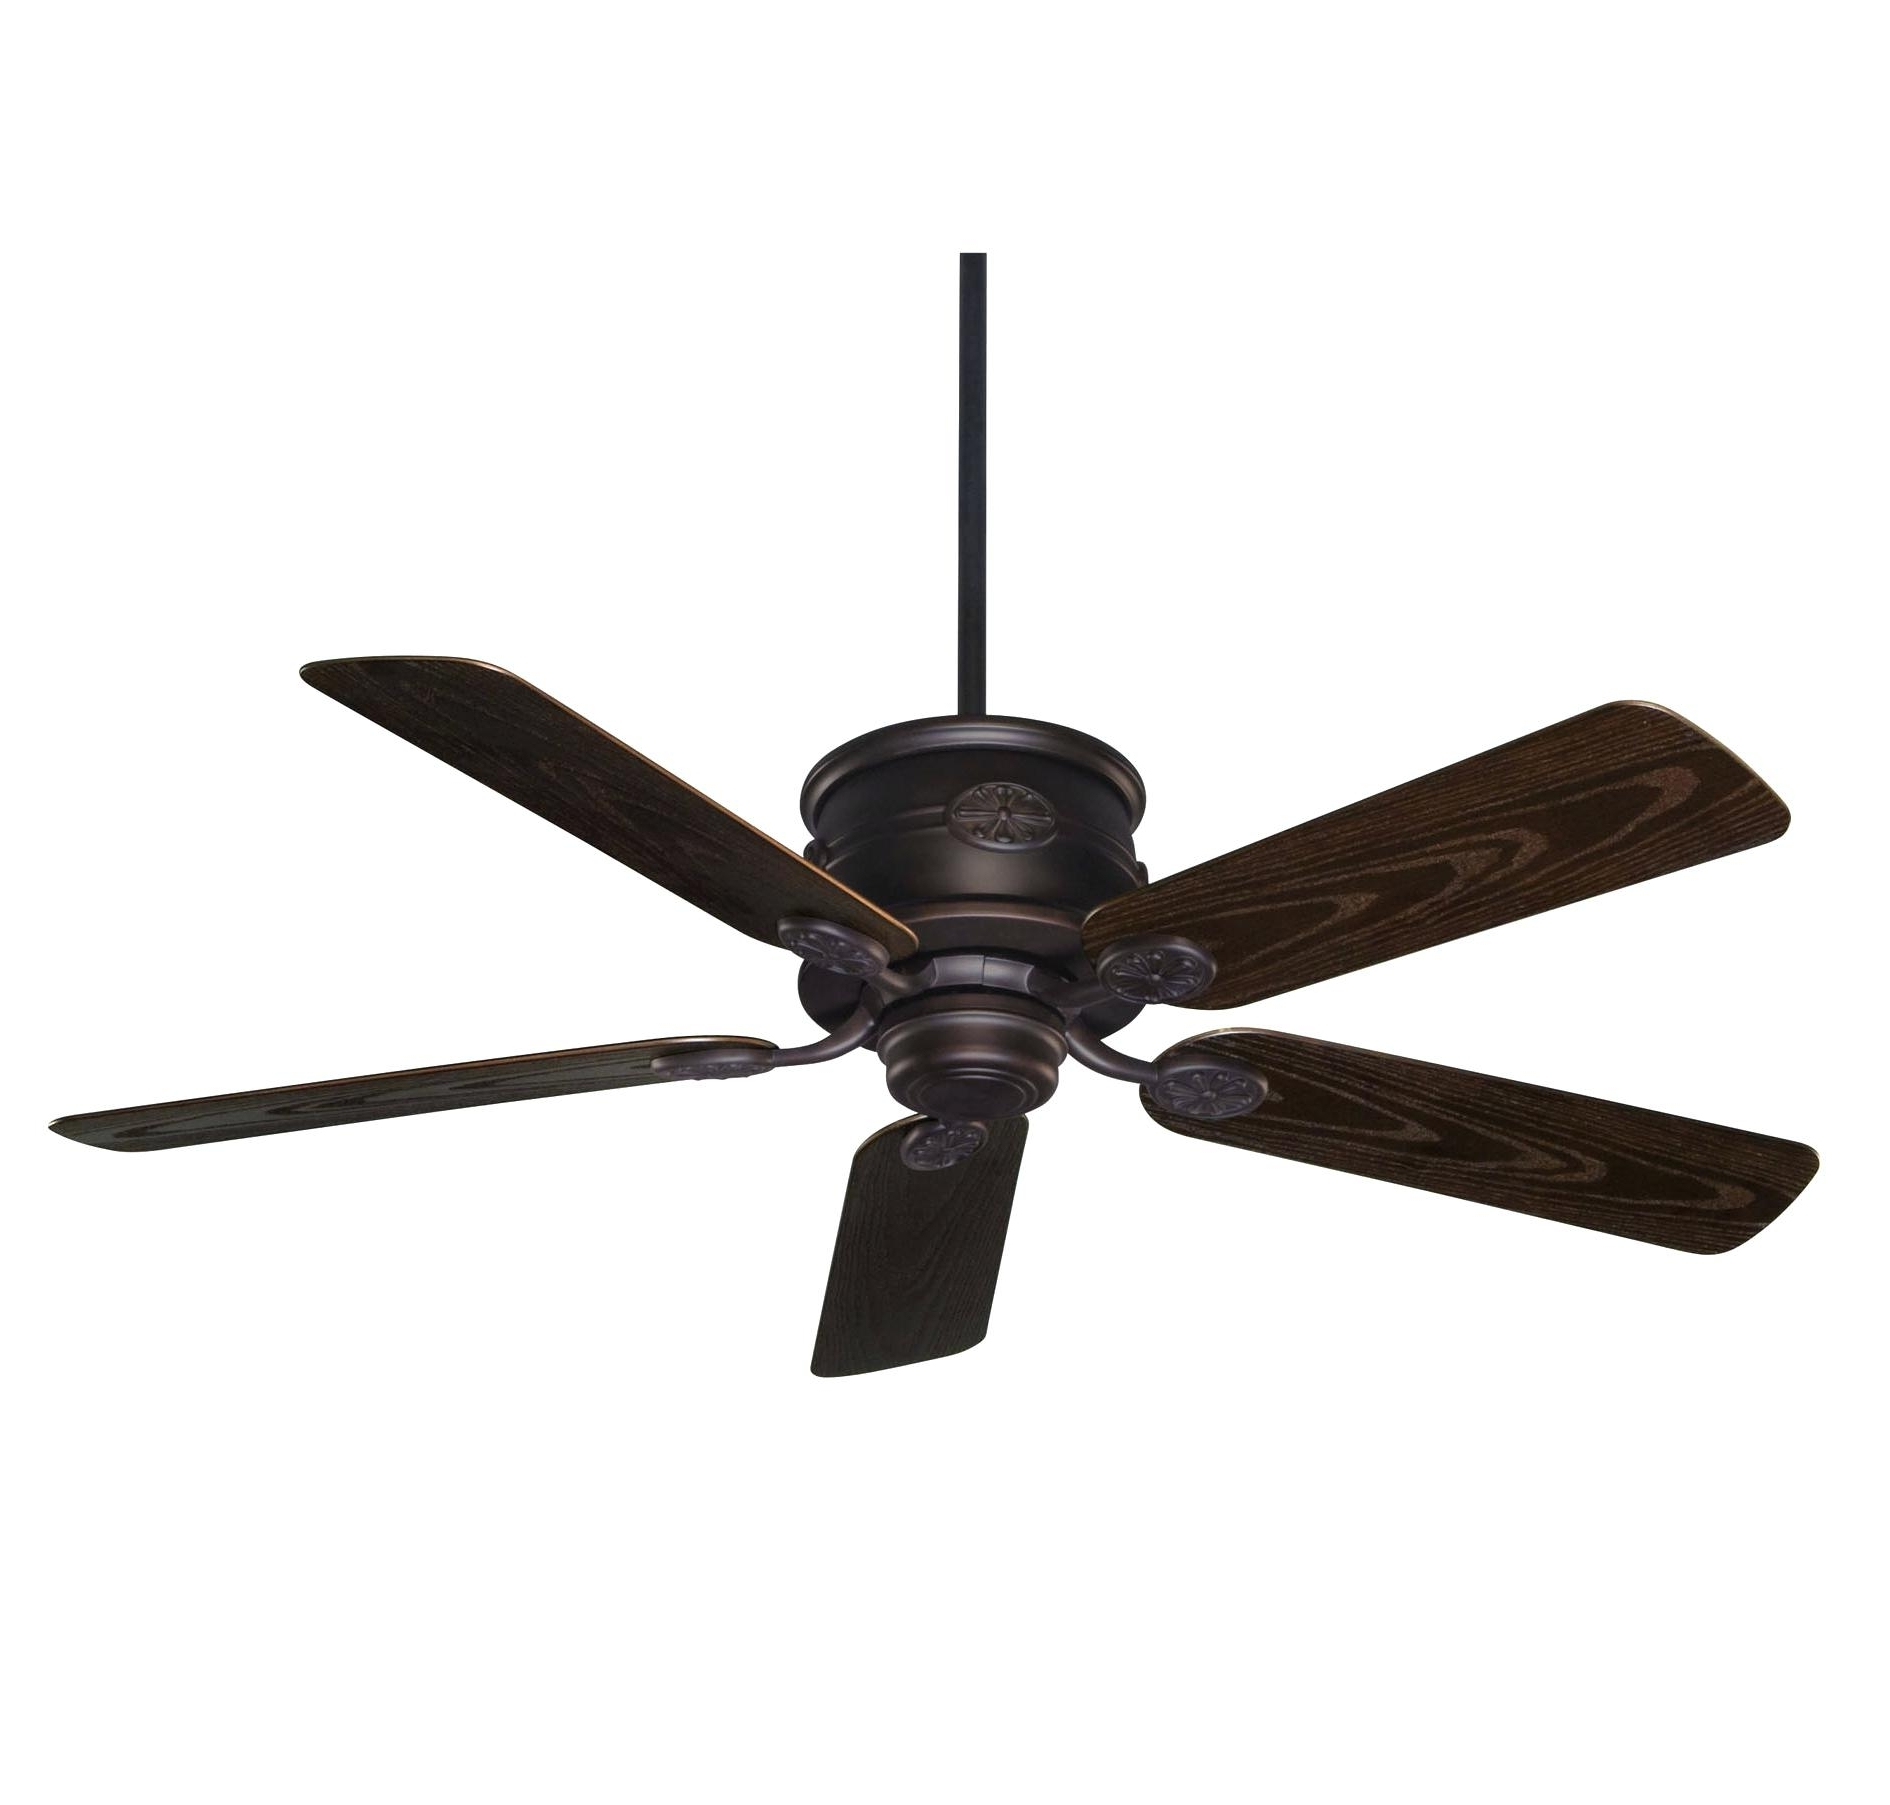 Widely Used Wayfair Outdoor Ceiling Fans Throughout Wayfair Ceiling Fans S Fan Lights With Remote Hugger (View 20 of 20)